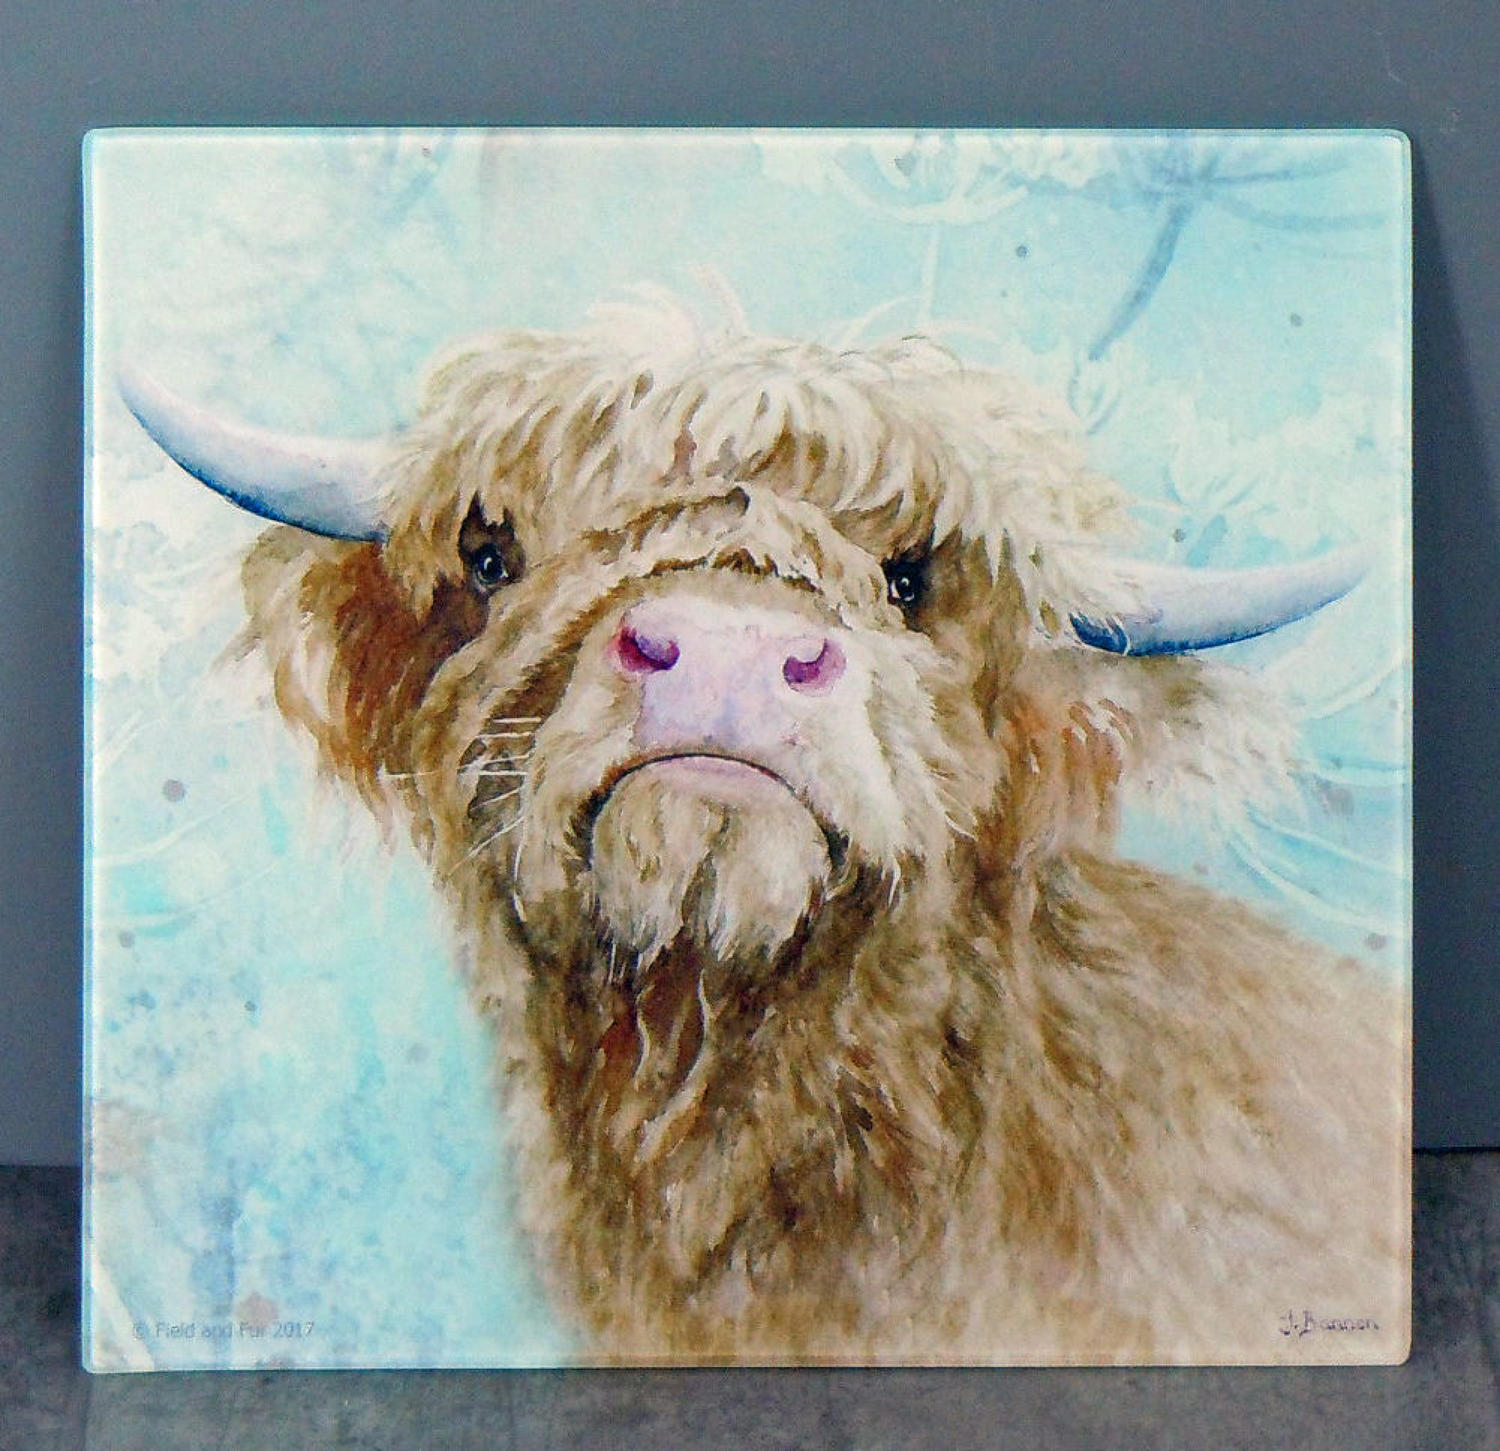 Glass Highland Cow chopping board, worktop saver